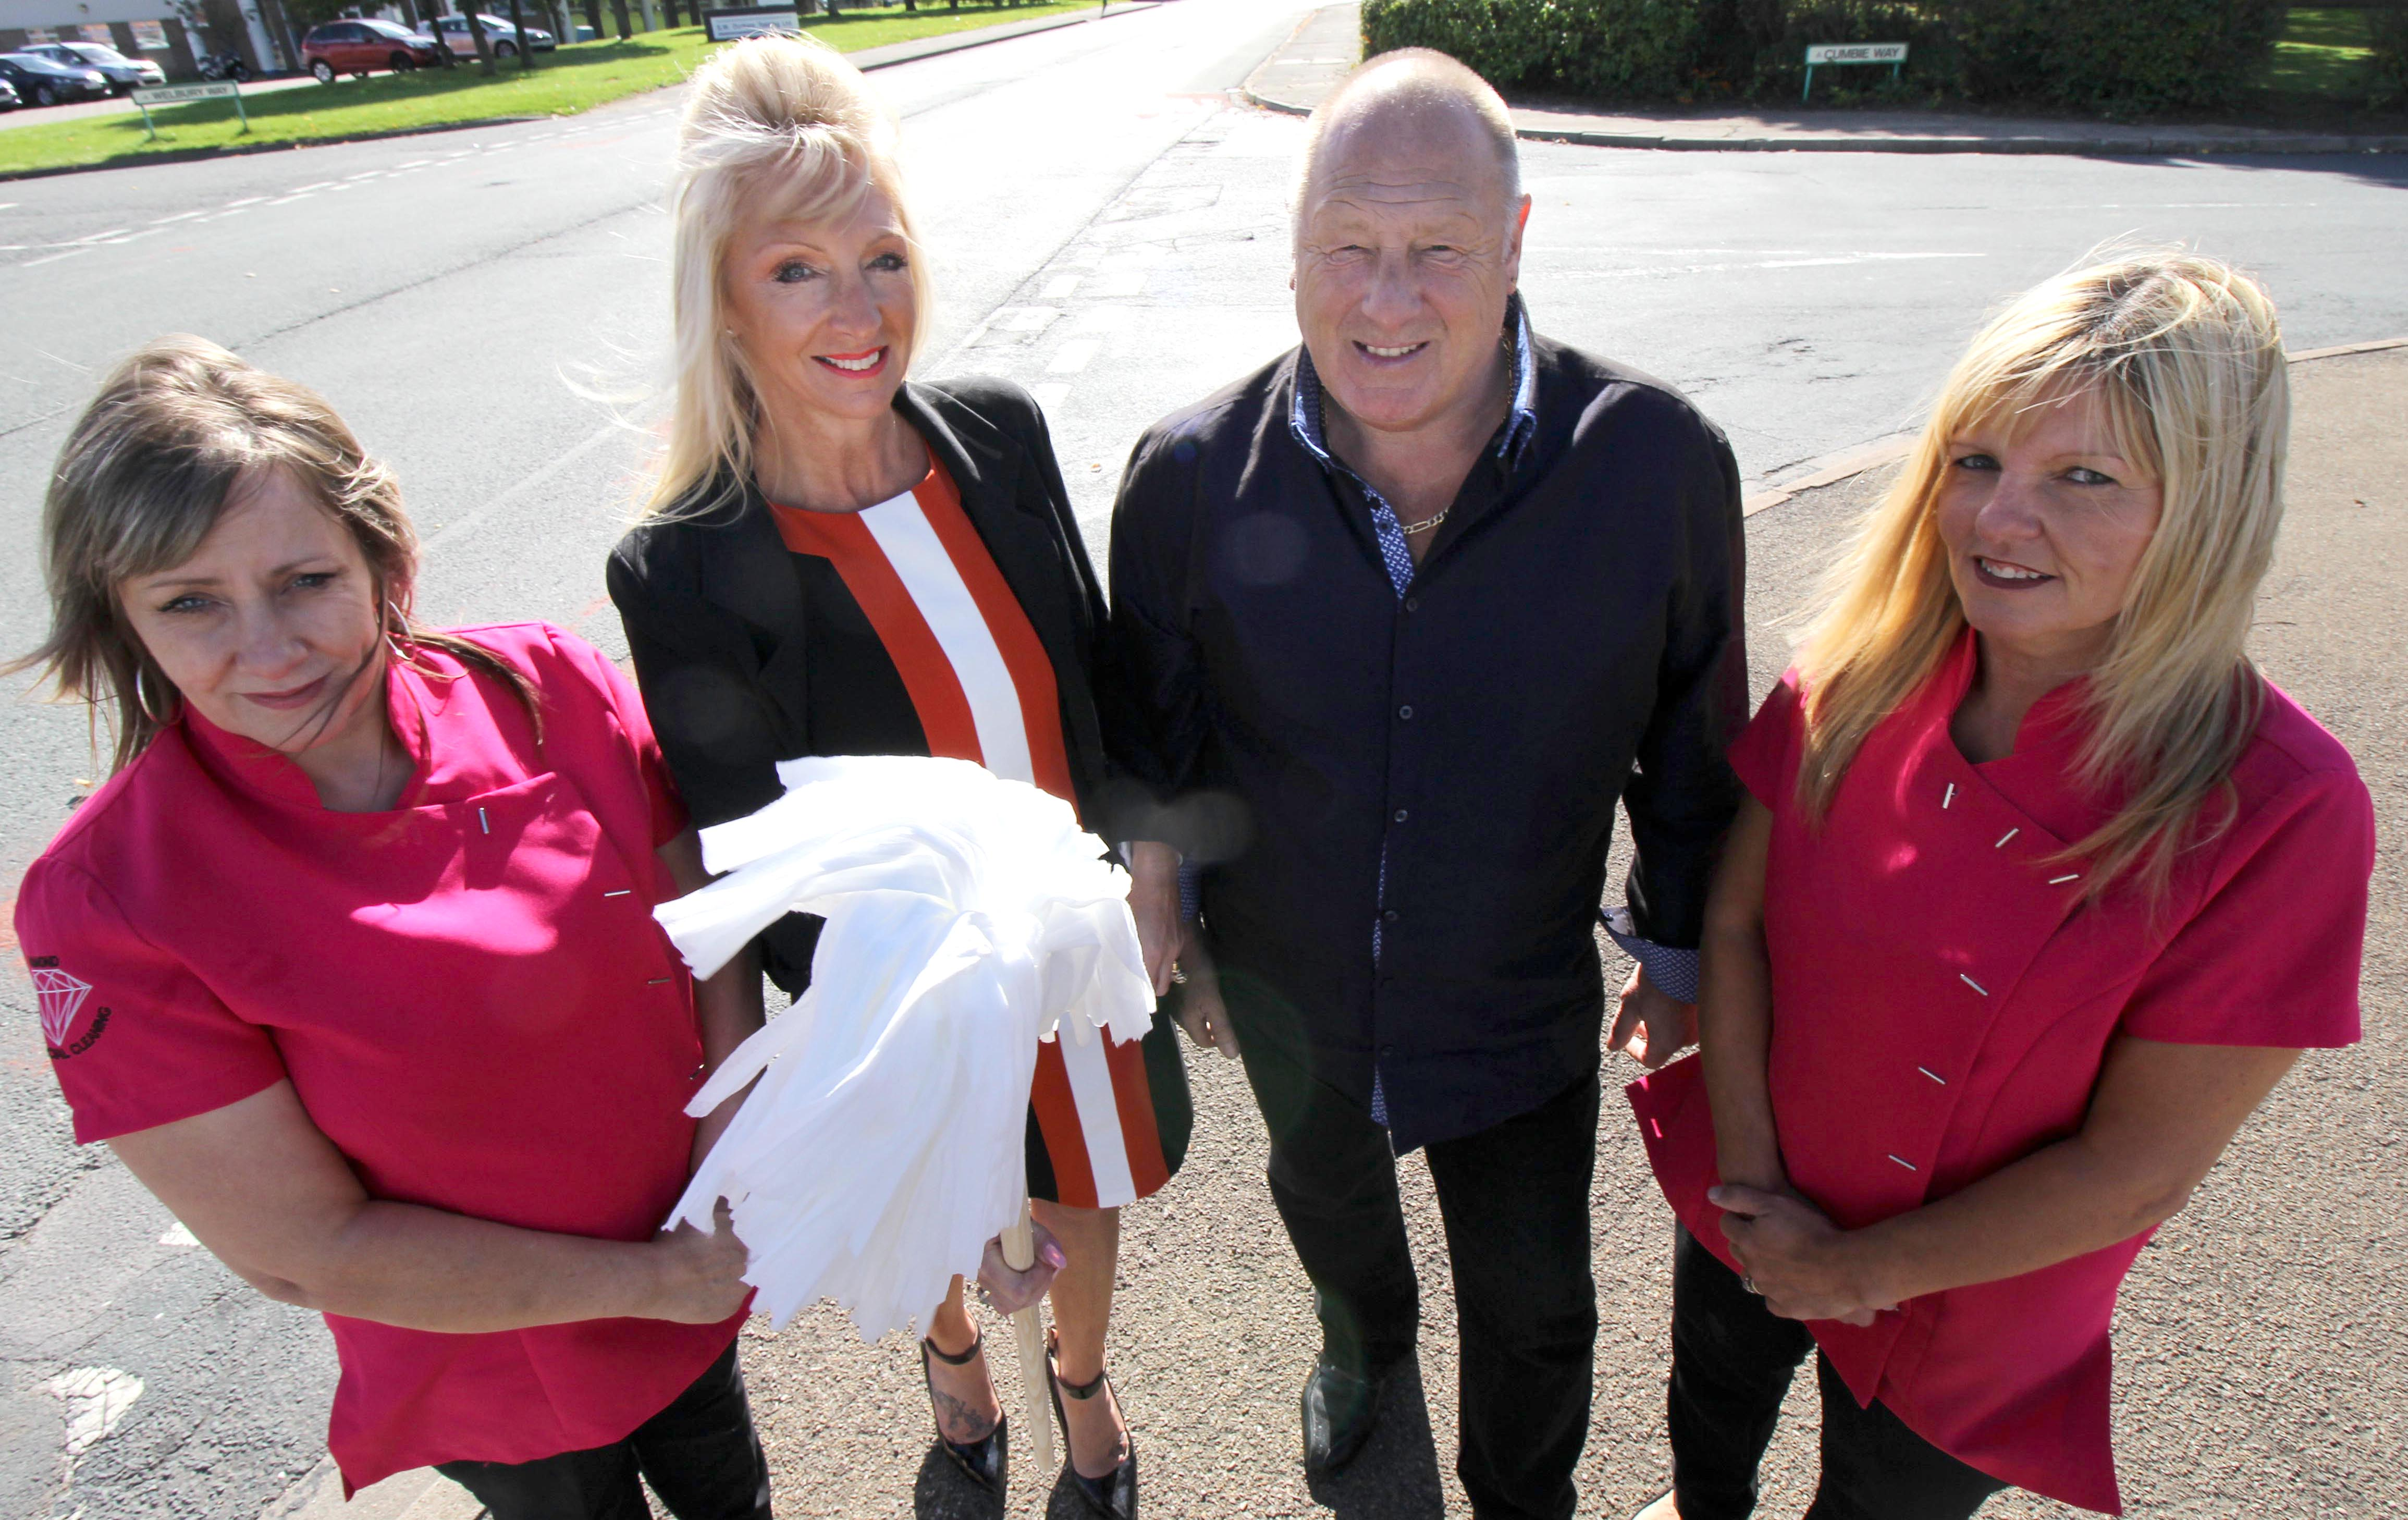 Cleaning Company Celebrates 10th year with Growth Plan